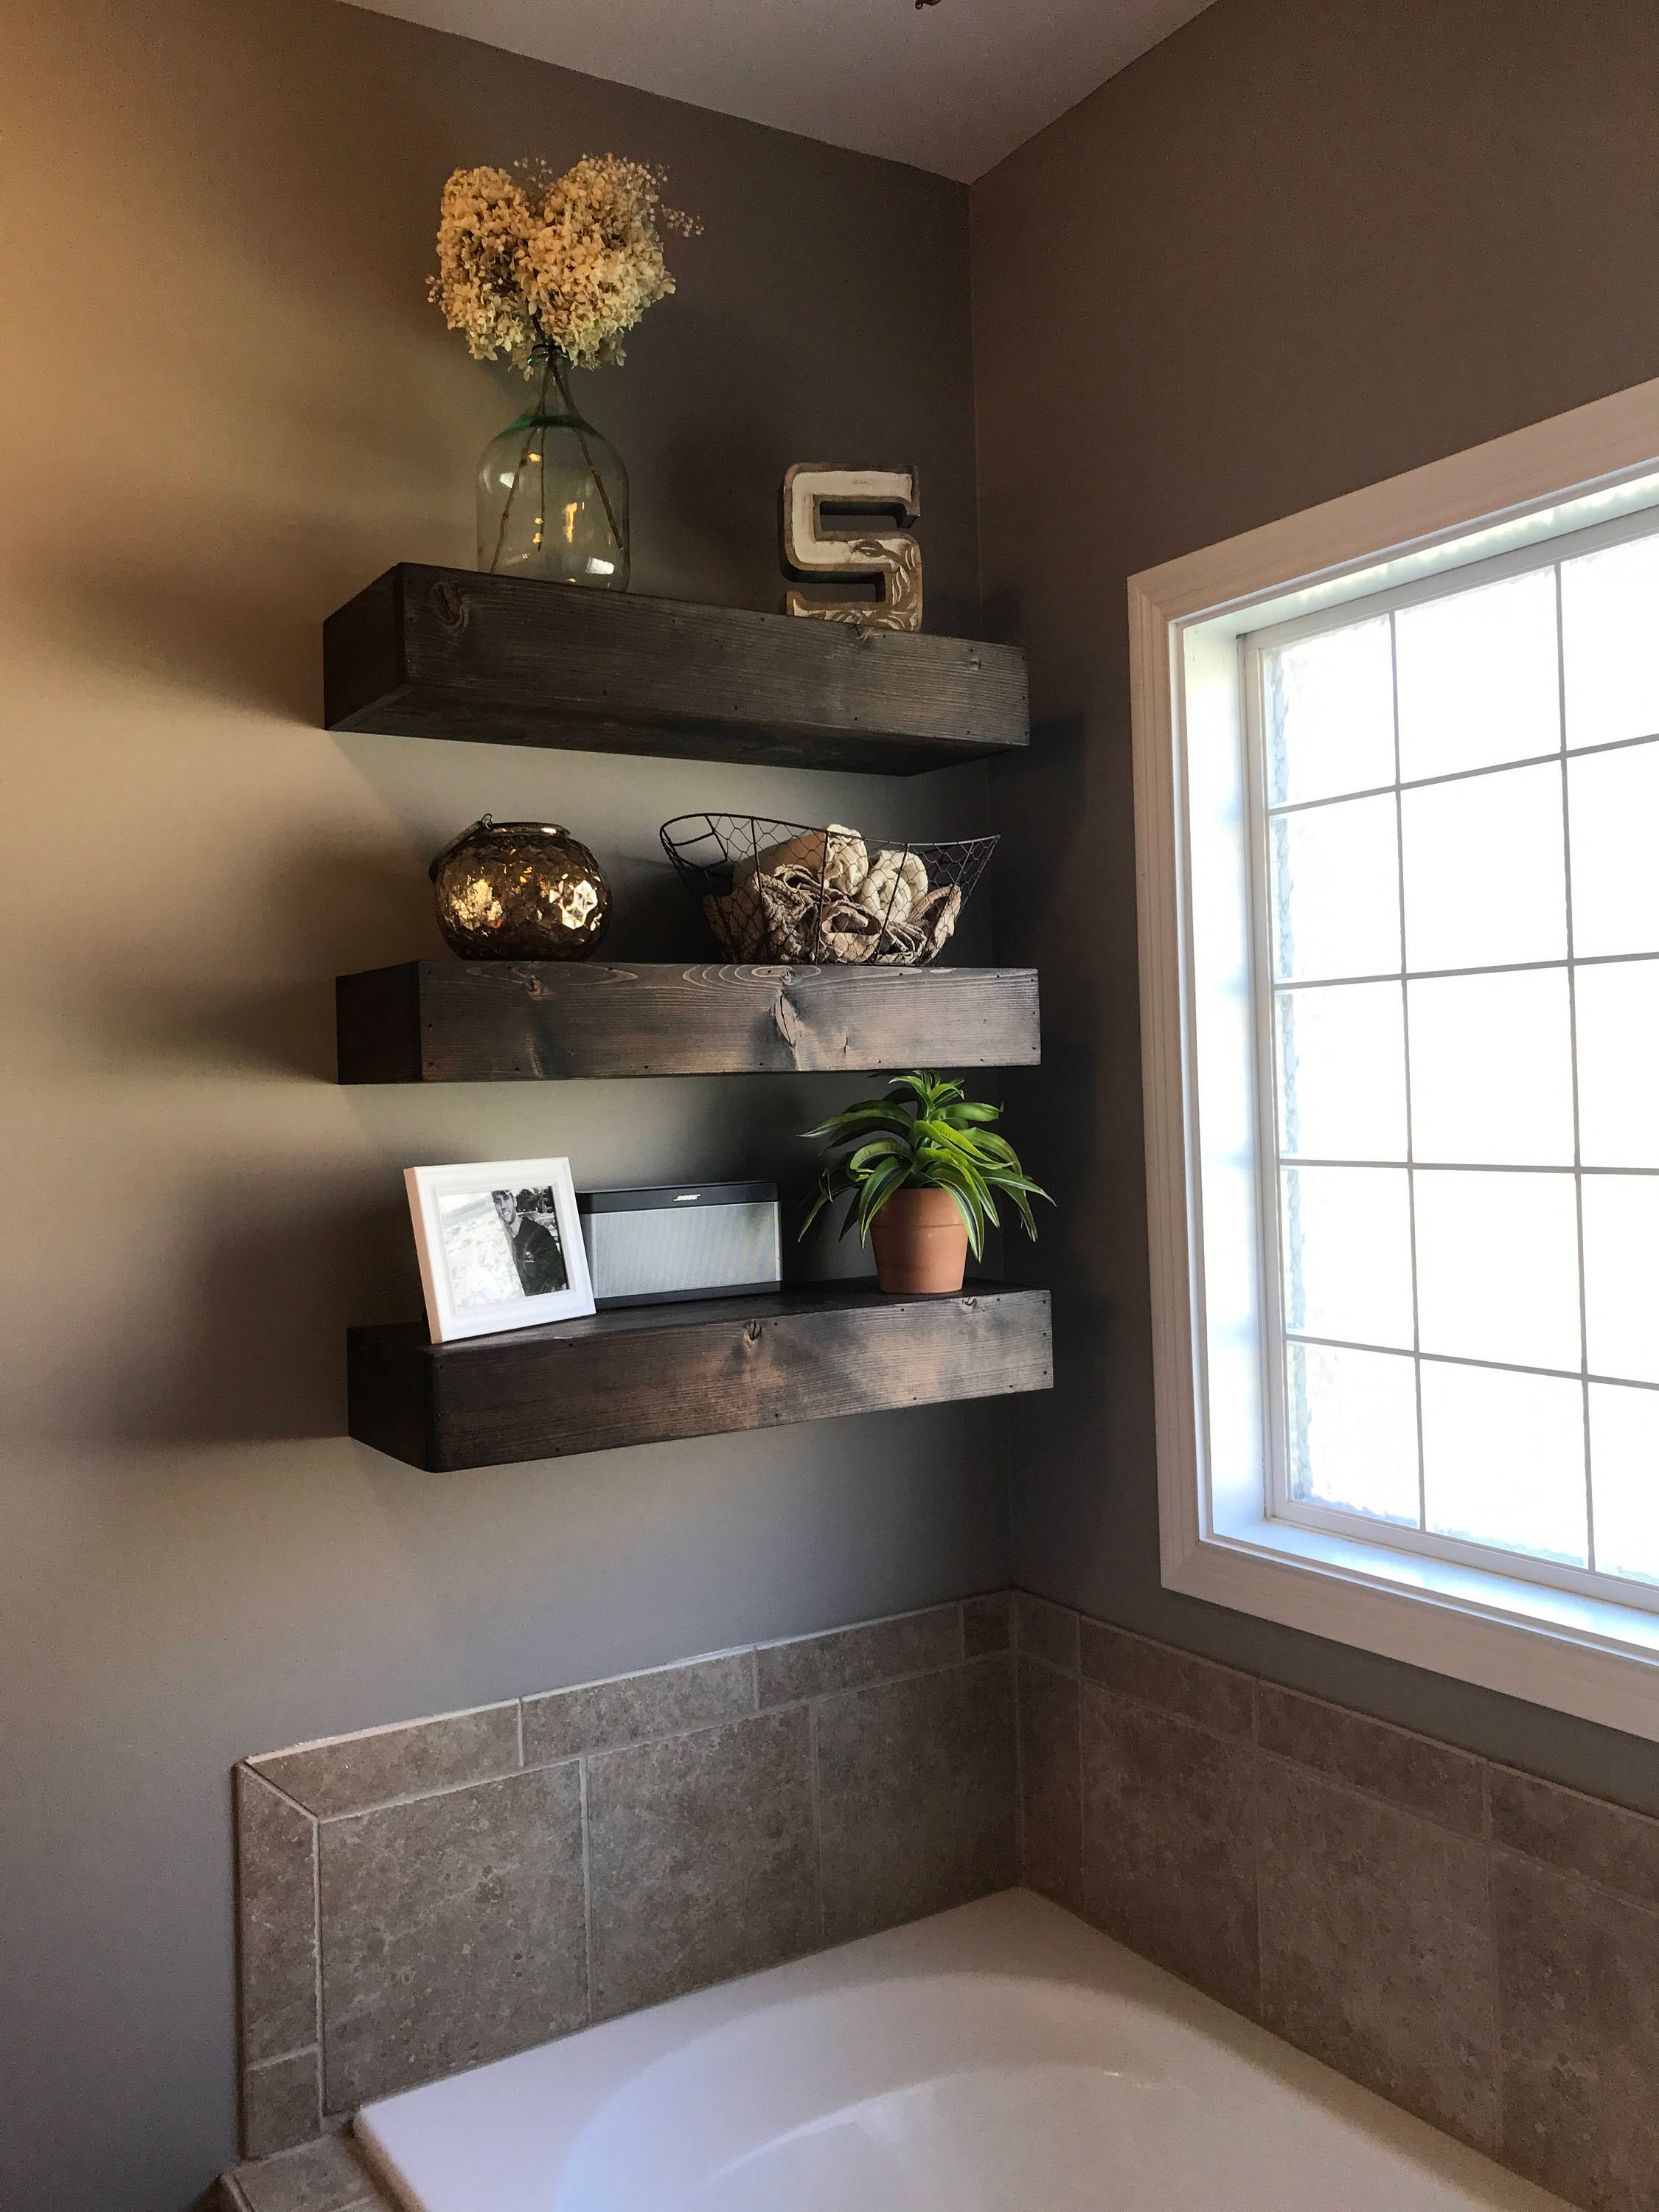 wood floating shelf shelves rustic bathroom etsy fullxfull decor black gloss with glass doors peel and stick vinyl flooring over concrete timber vanity wall toilet decking lights